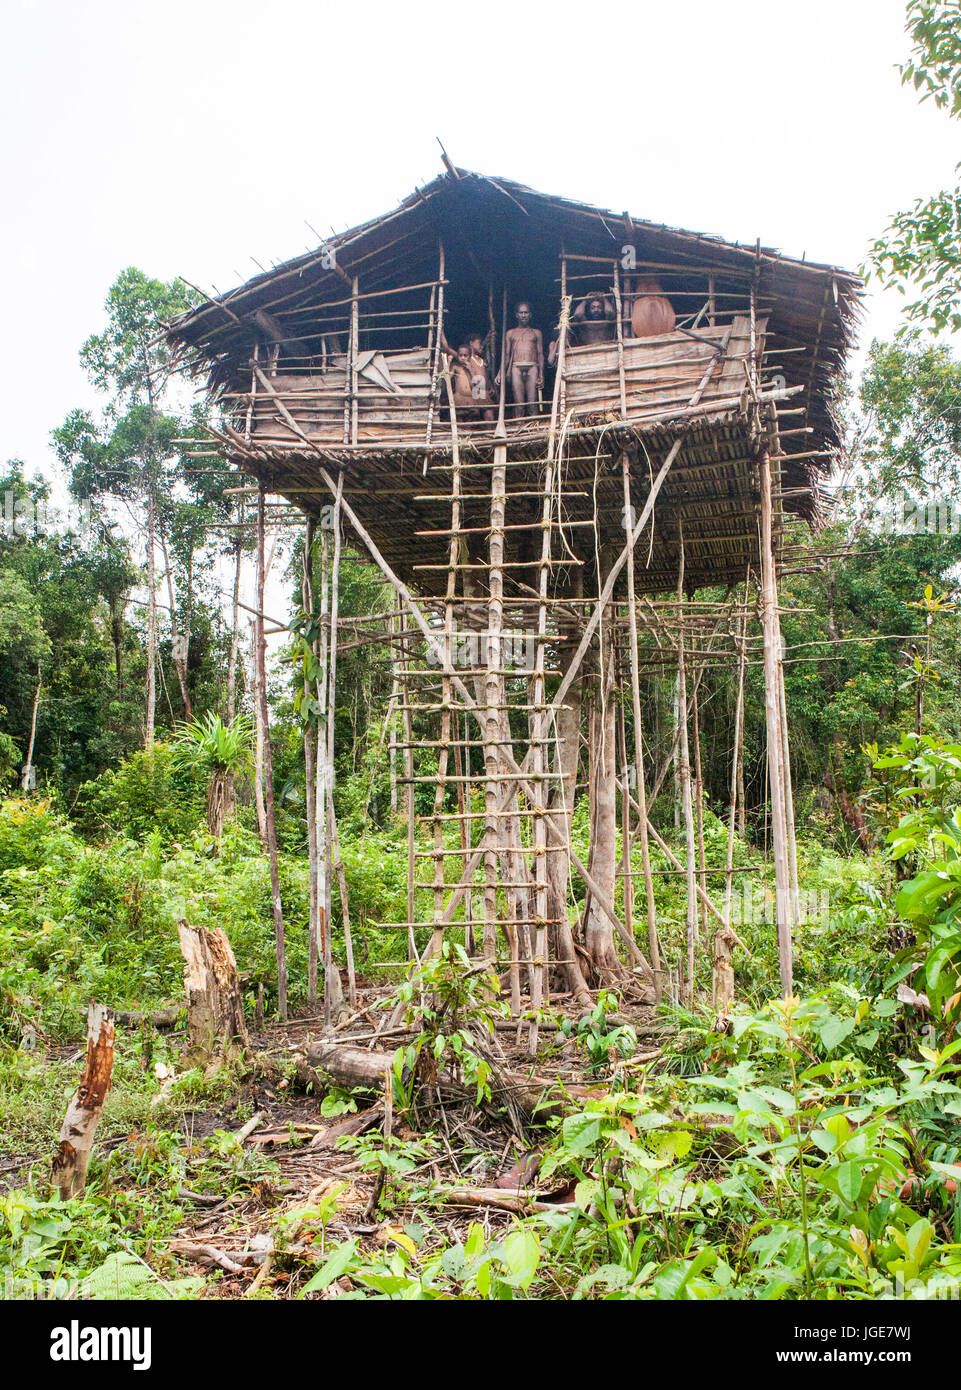 Indonesia Onni Village New Guinea June 24 Traditional House Stock Photo Alamy